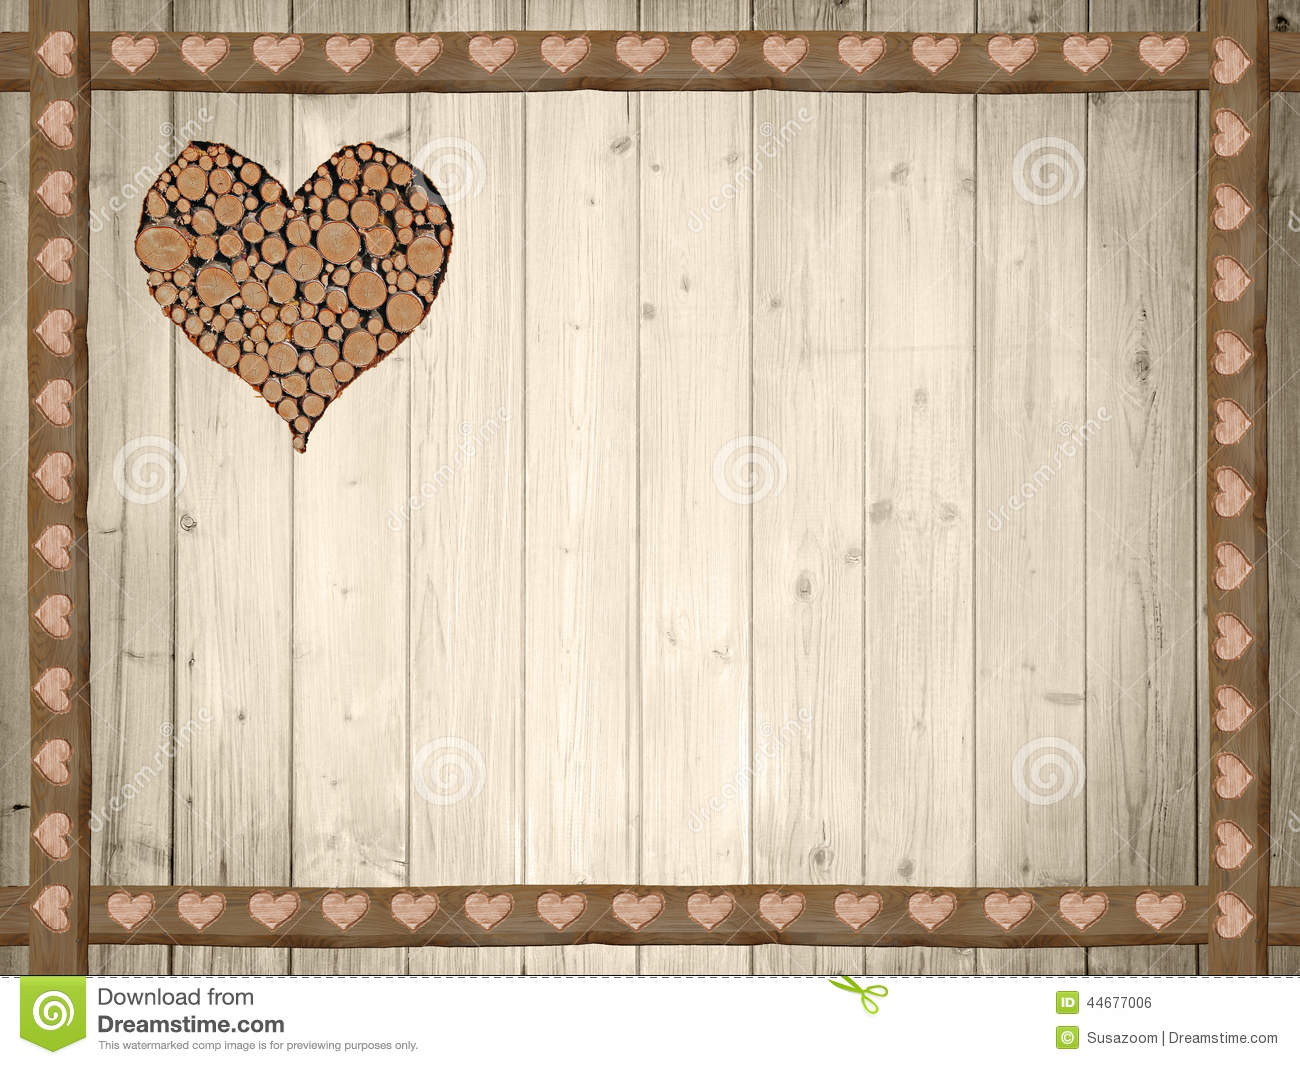 Background of wooden planks, wooden border with hearts